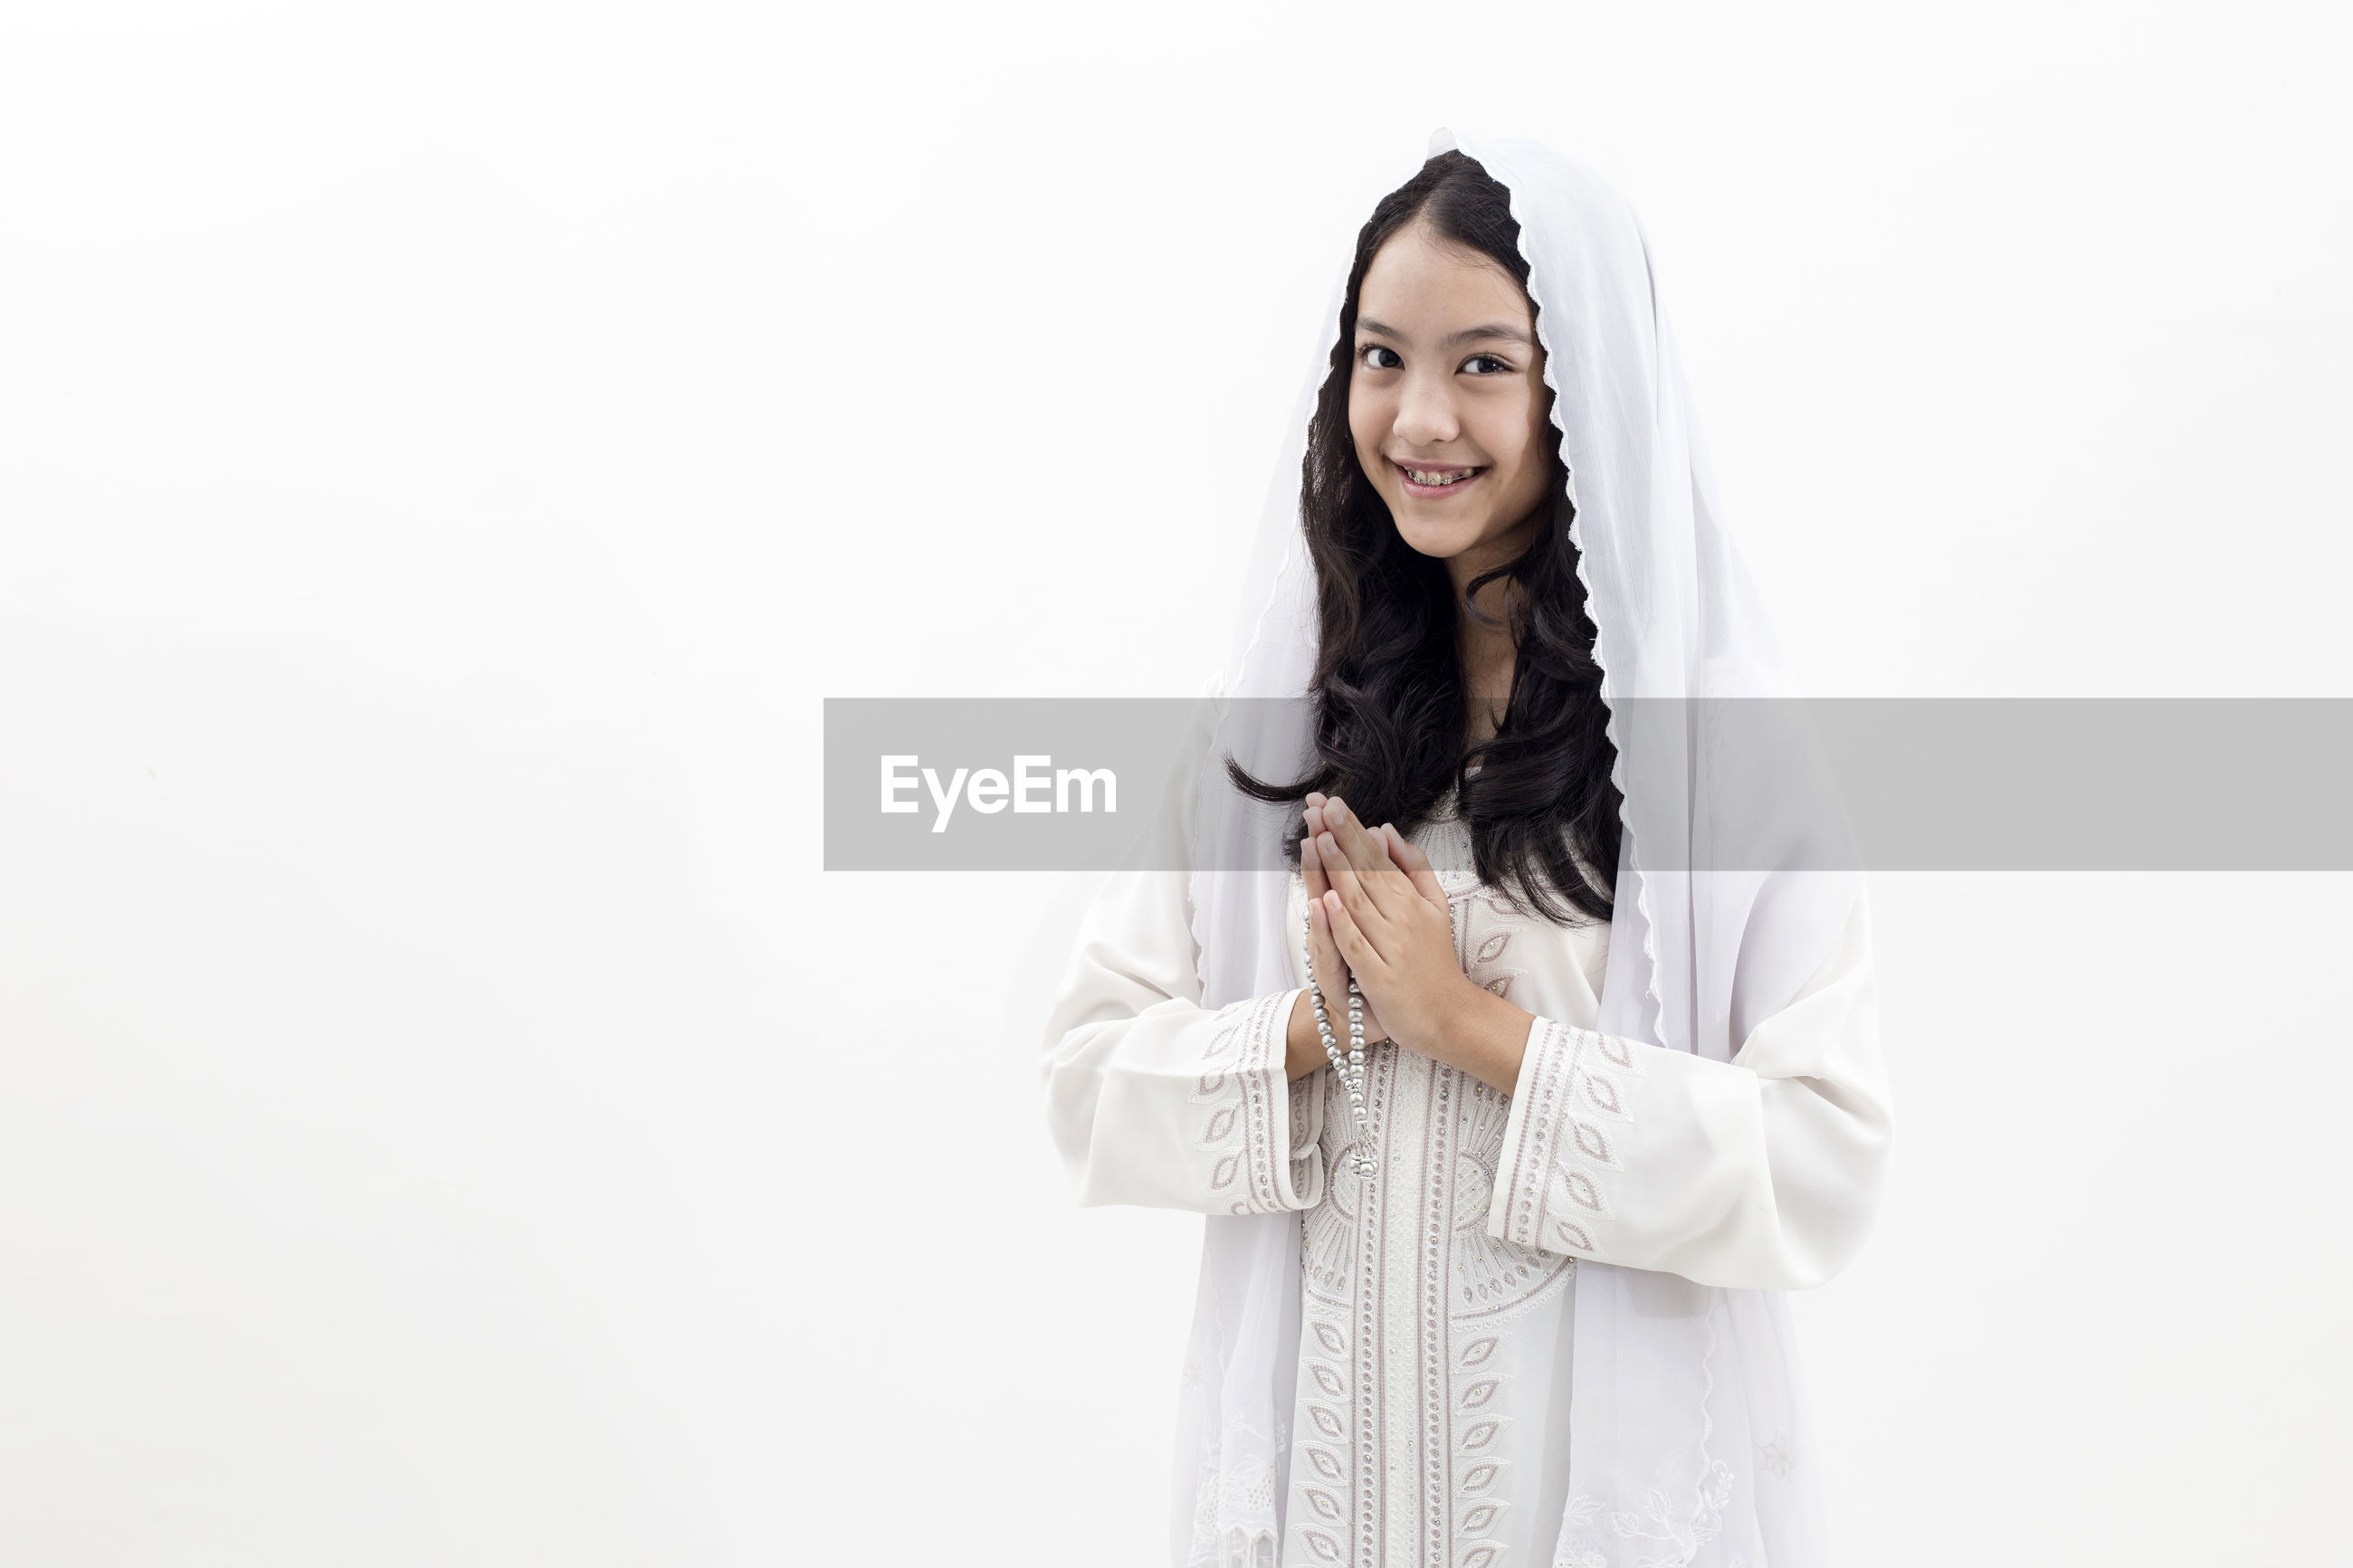 Portrait of smiling girl praying against white background